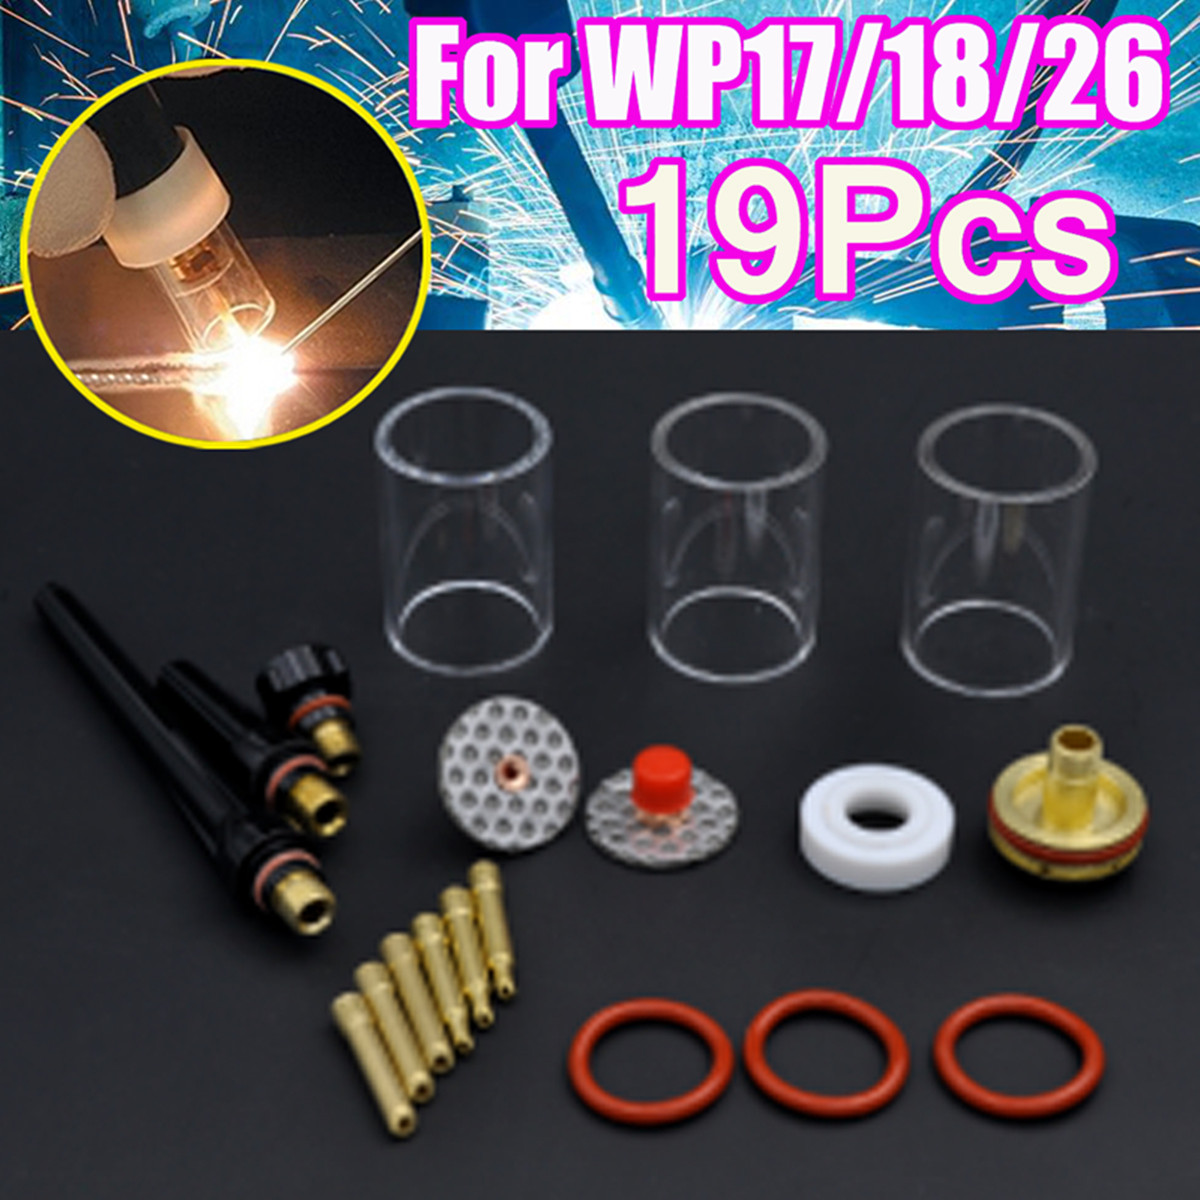 New 19PC TIG Welding Torch Kit Tungsten Needle Clip Stubby Collet Body Gas Lens Insulator Pyrex Glass Cup for WP-17/18/26 Series 17pcs tig welding torch stubby collet gas lens glass nozzle pryex cup kit with heat resistant o rings for wp 17 18 26 series